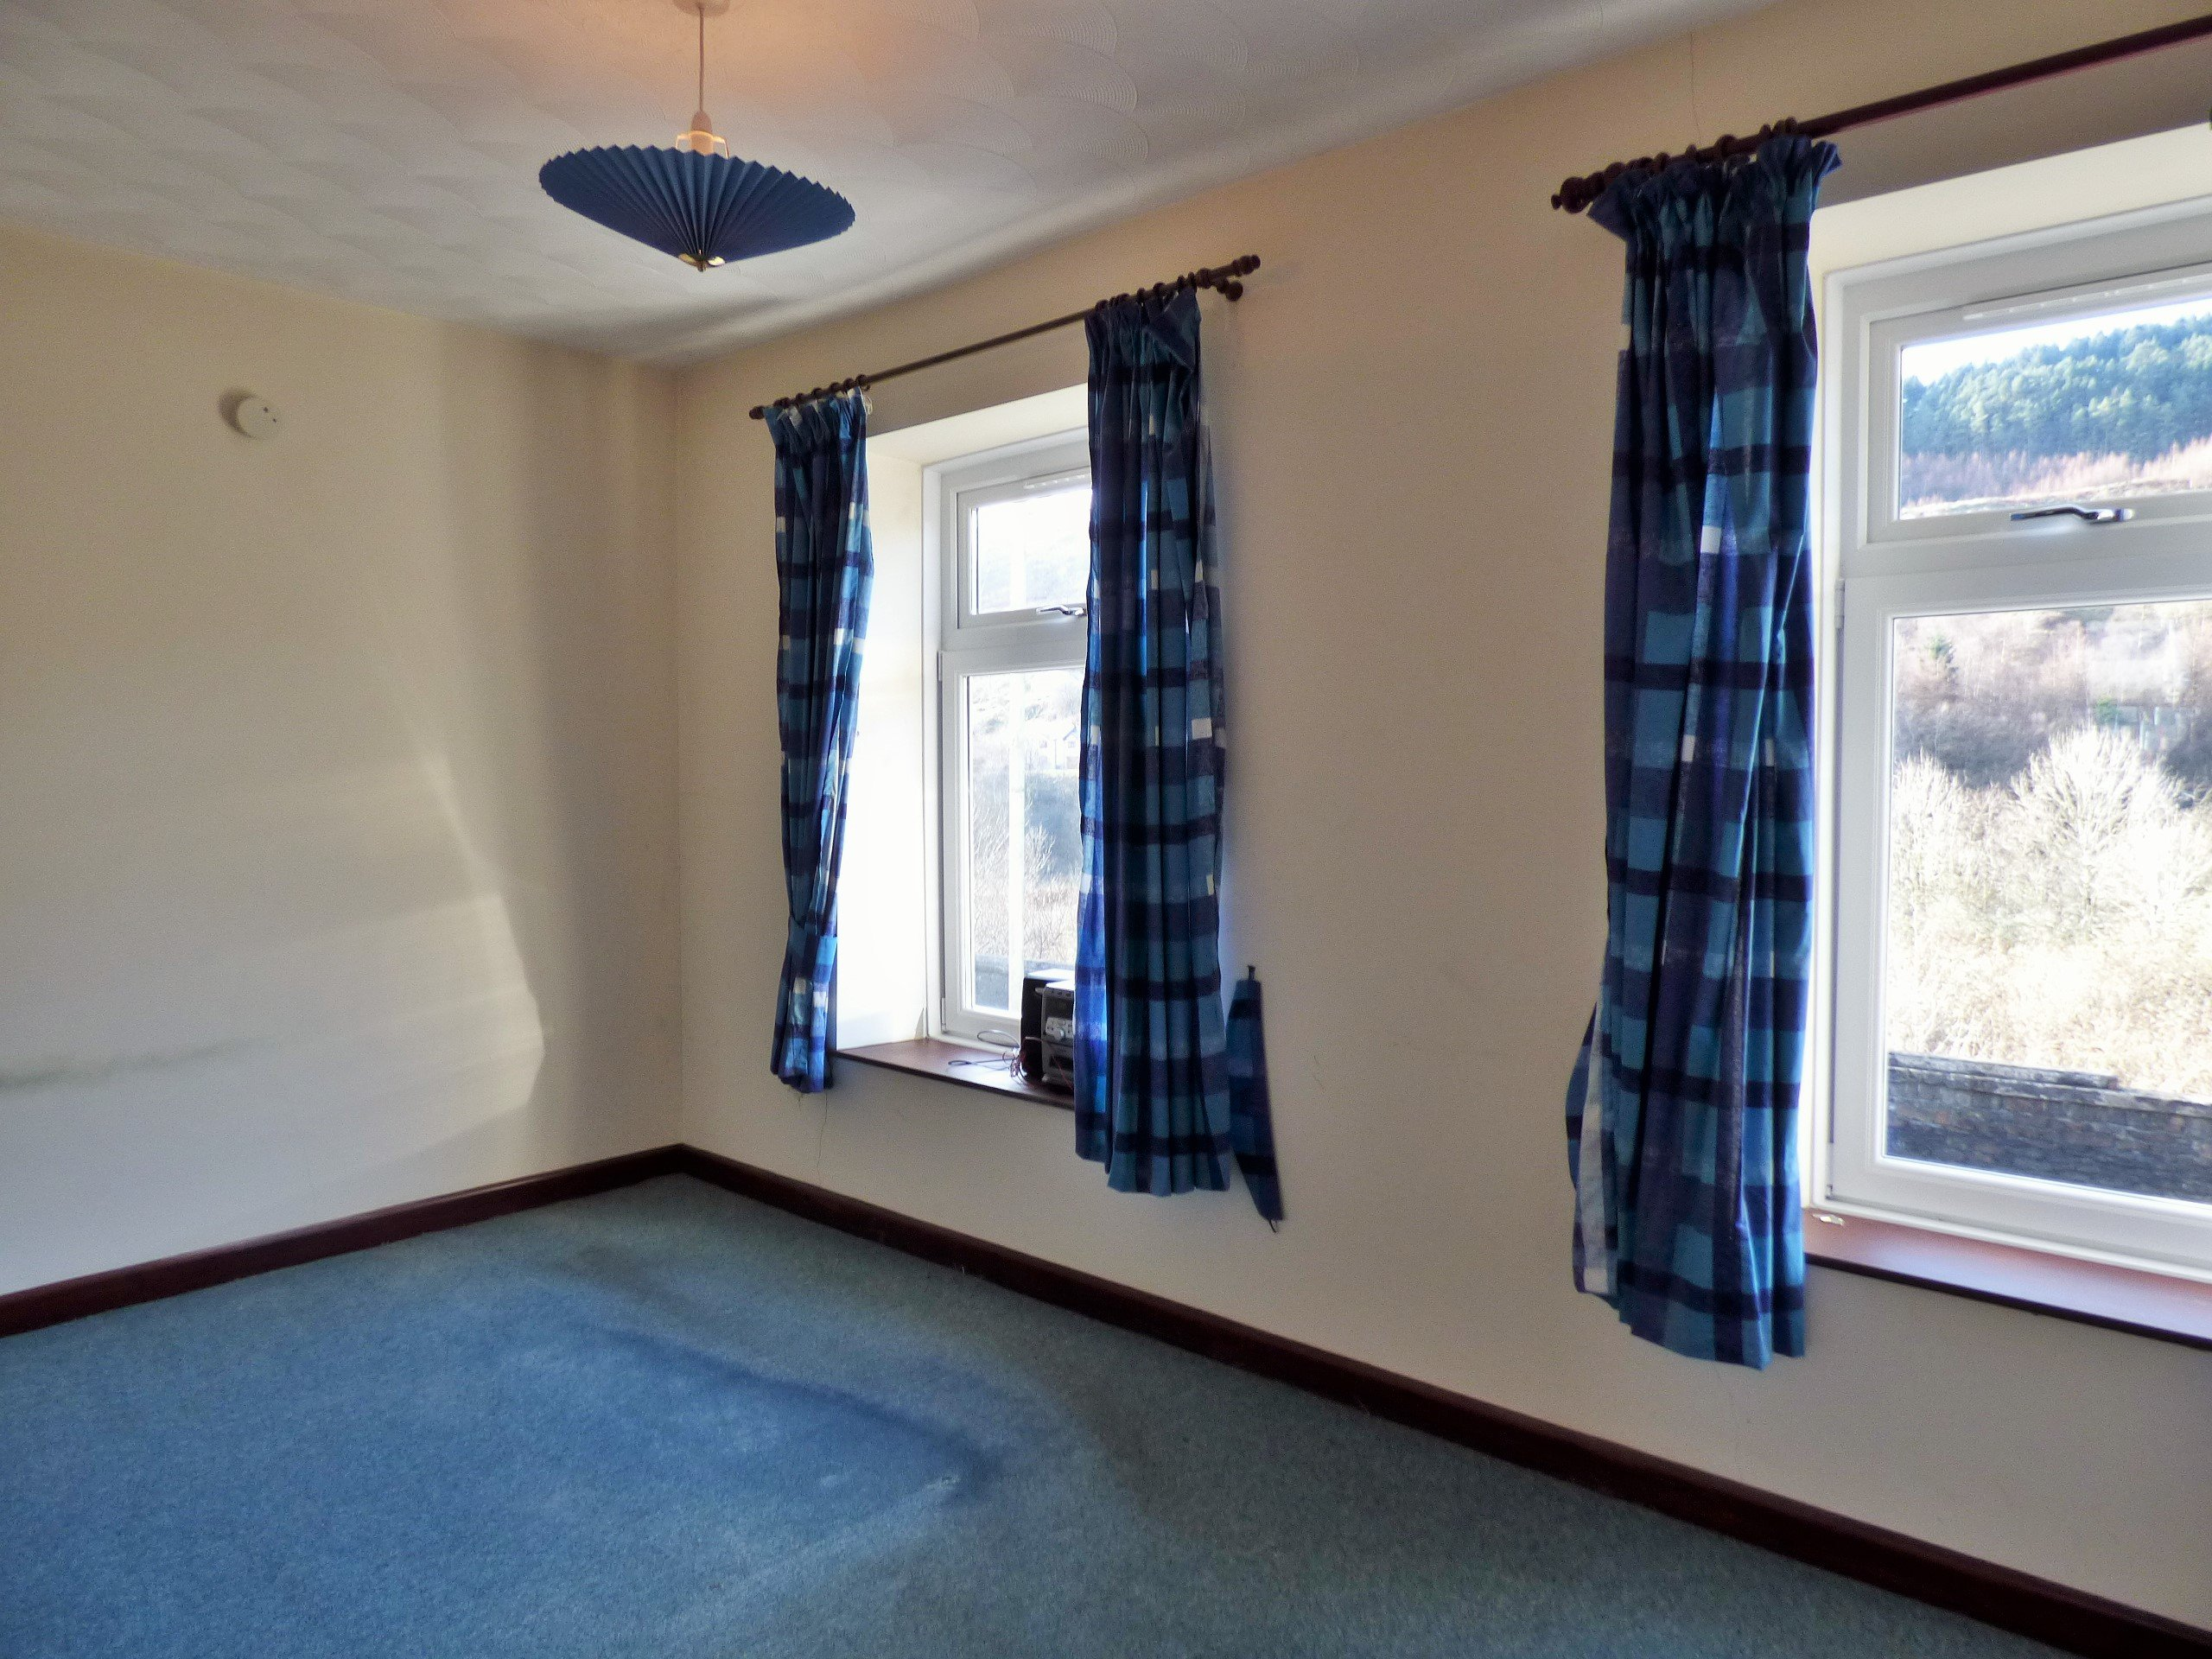 Wisemove Property for sale. Tanybryn House, Pontycymmer. Bedroom 1